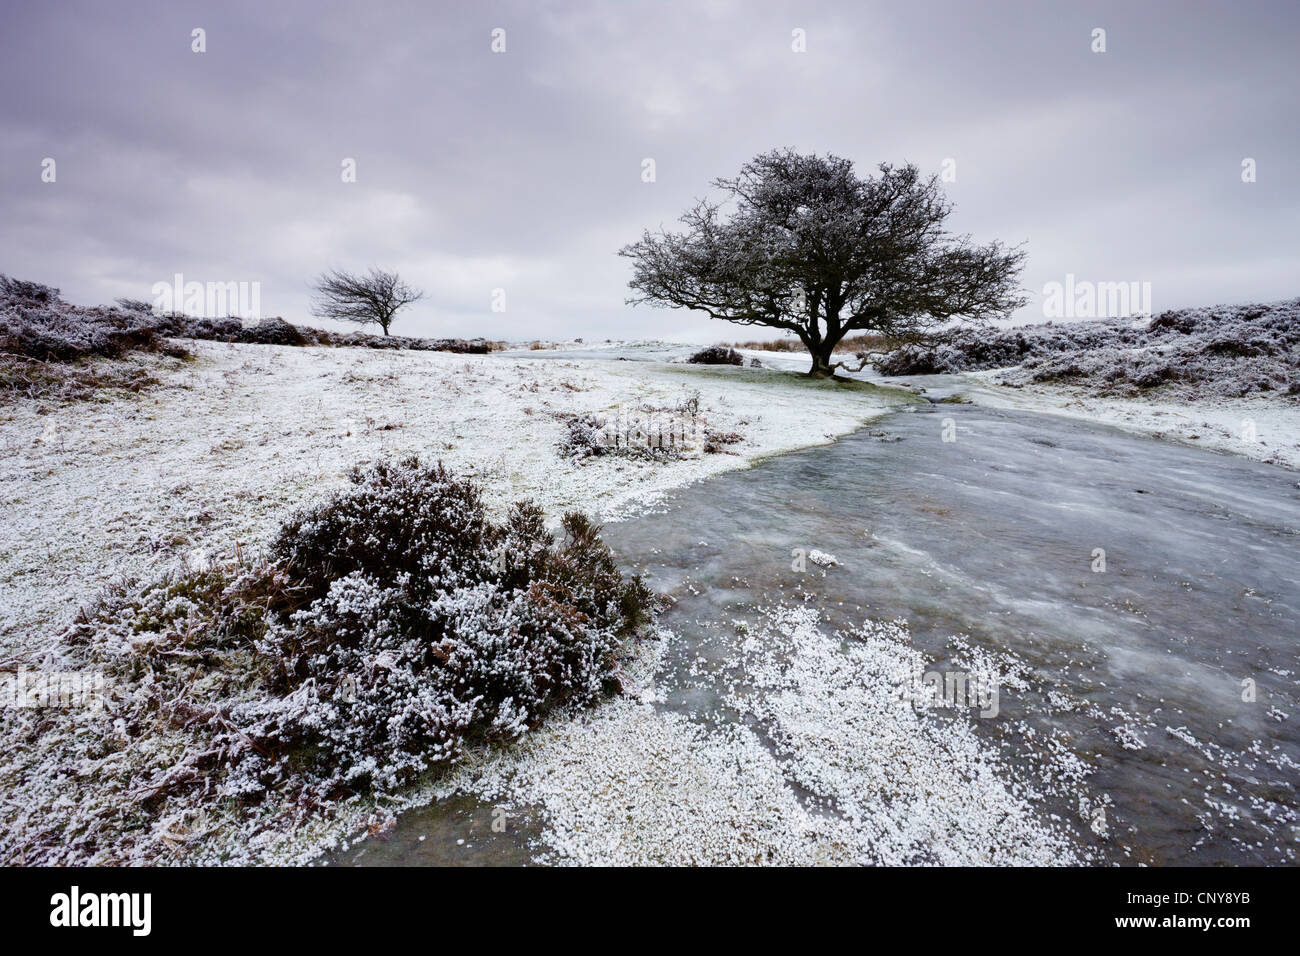 Snow and ice on Porlock Common in Winter, Exmoor National Park, Somerset, England. January 2009 - Stock Image